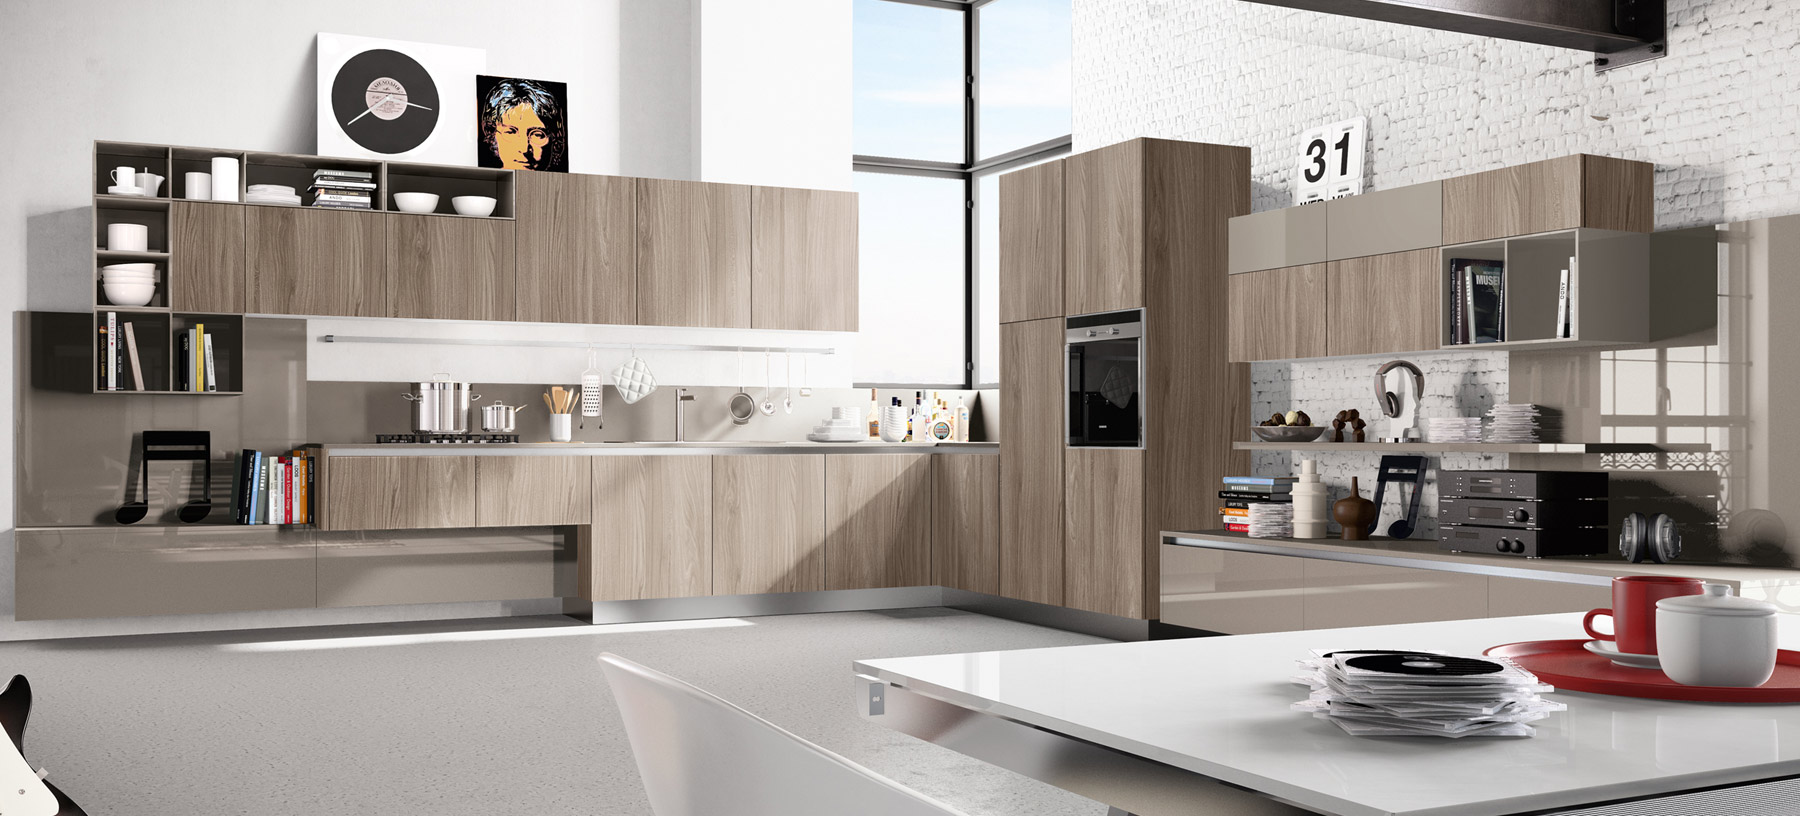 Modern Kitchen Decor Of Kitchen Designs That Pop